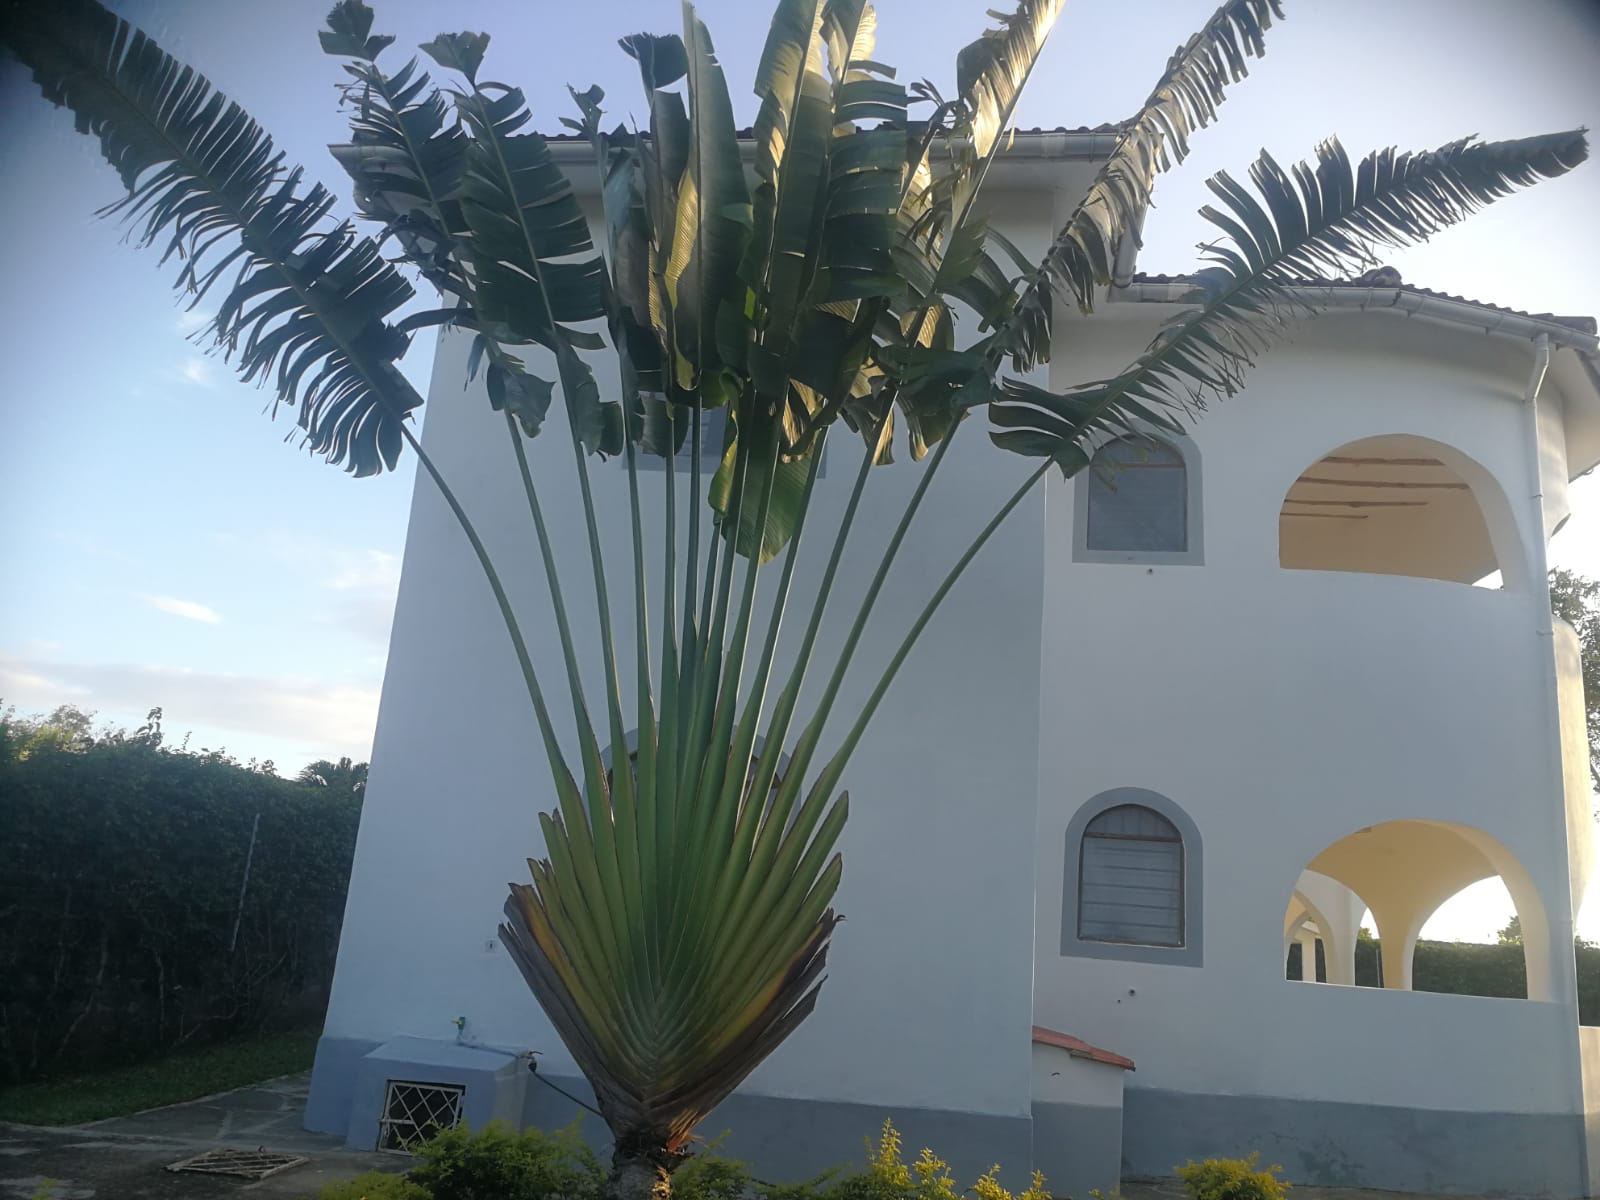 Property for sale in Diani Beach near Ukunda Airstrip